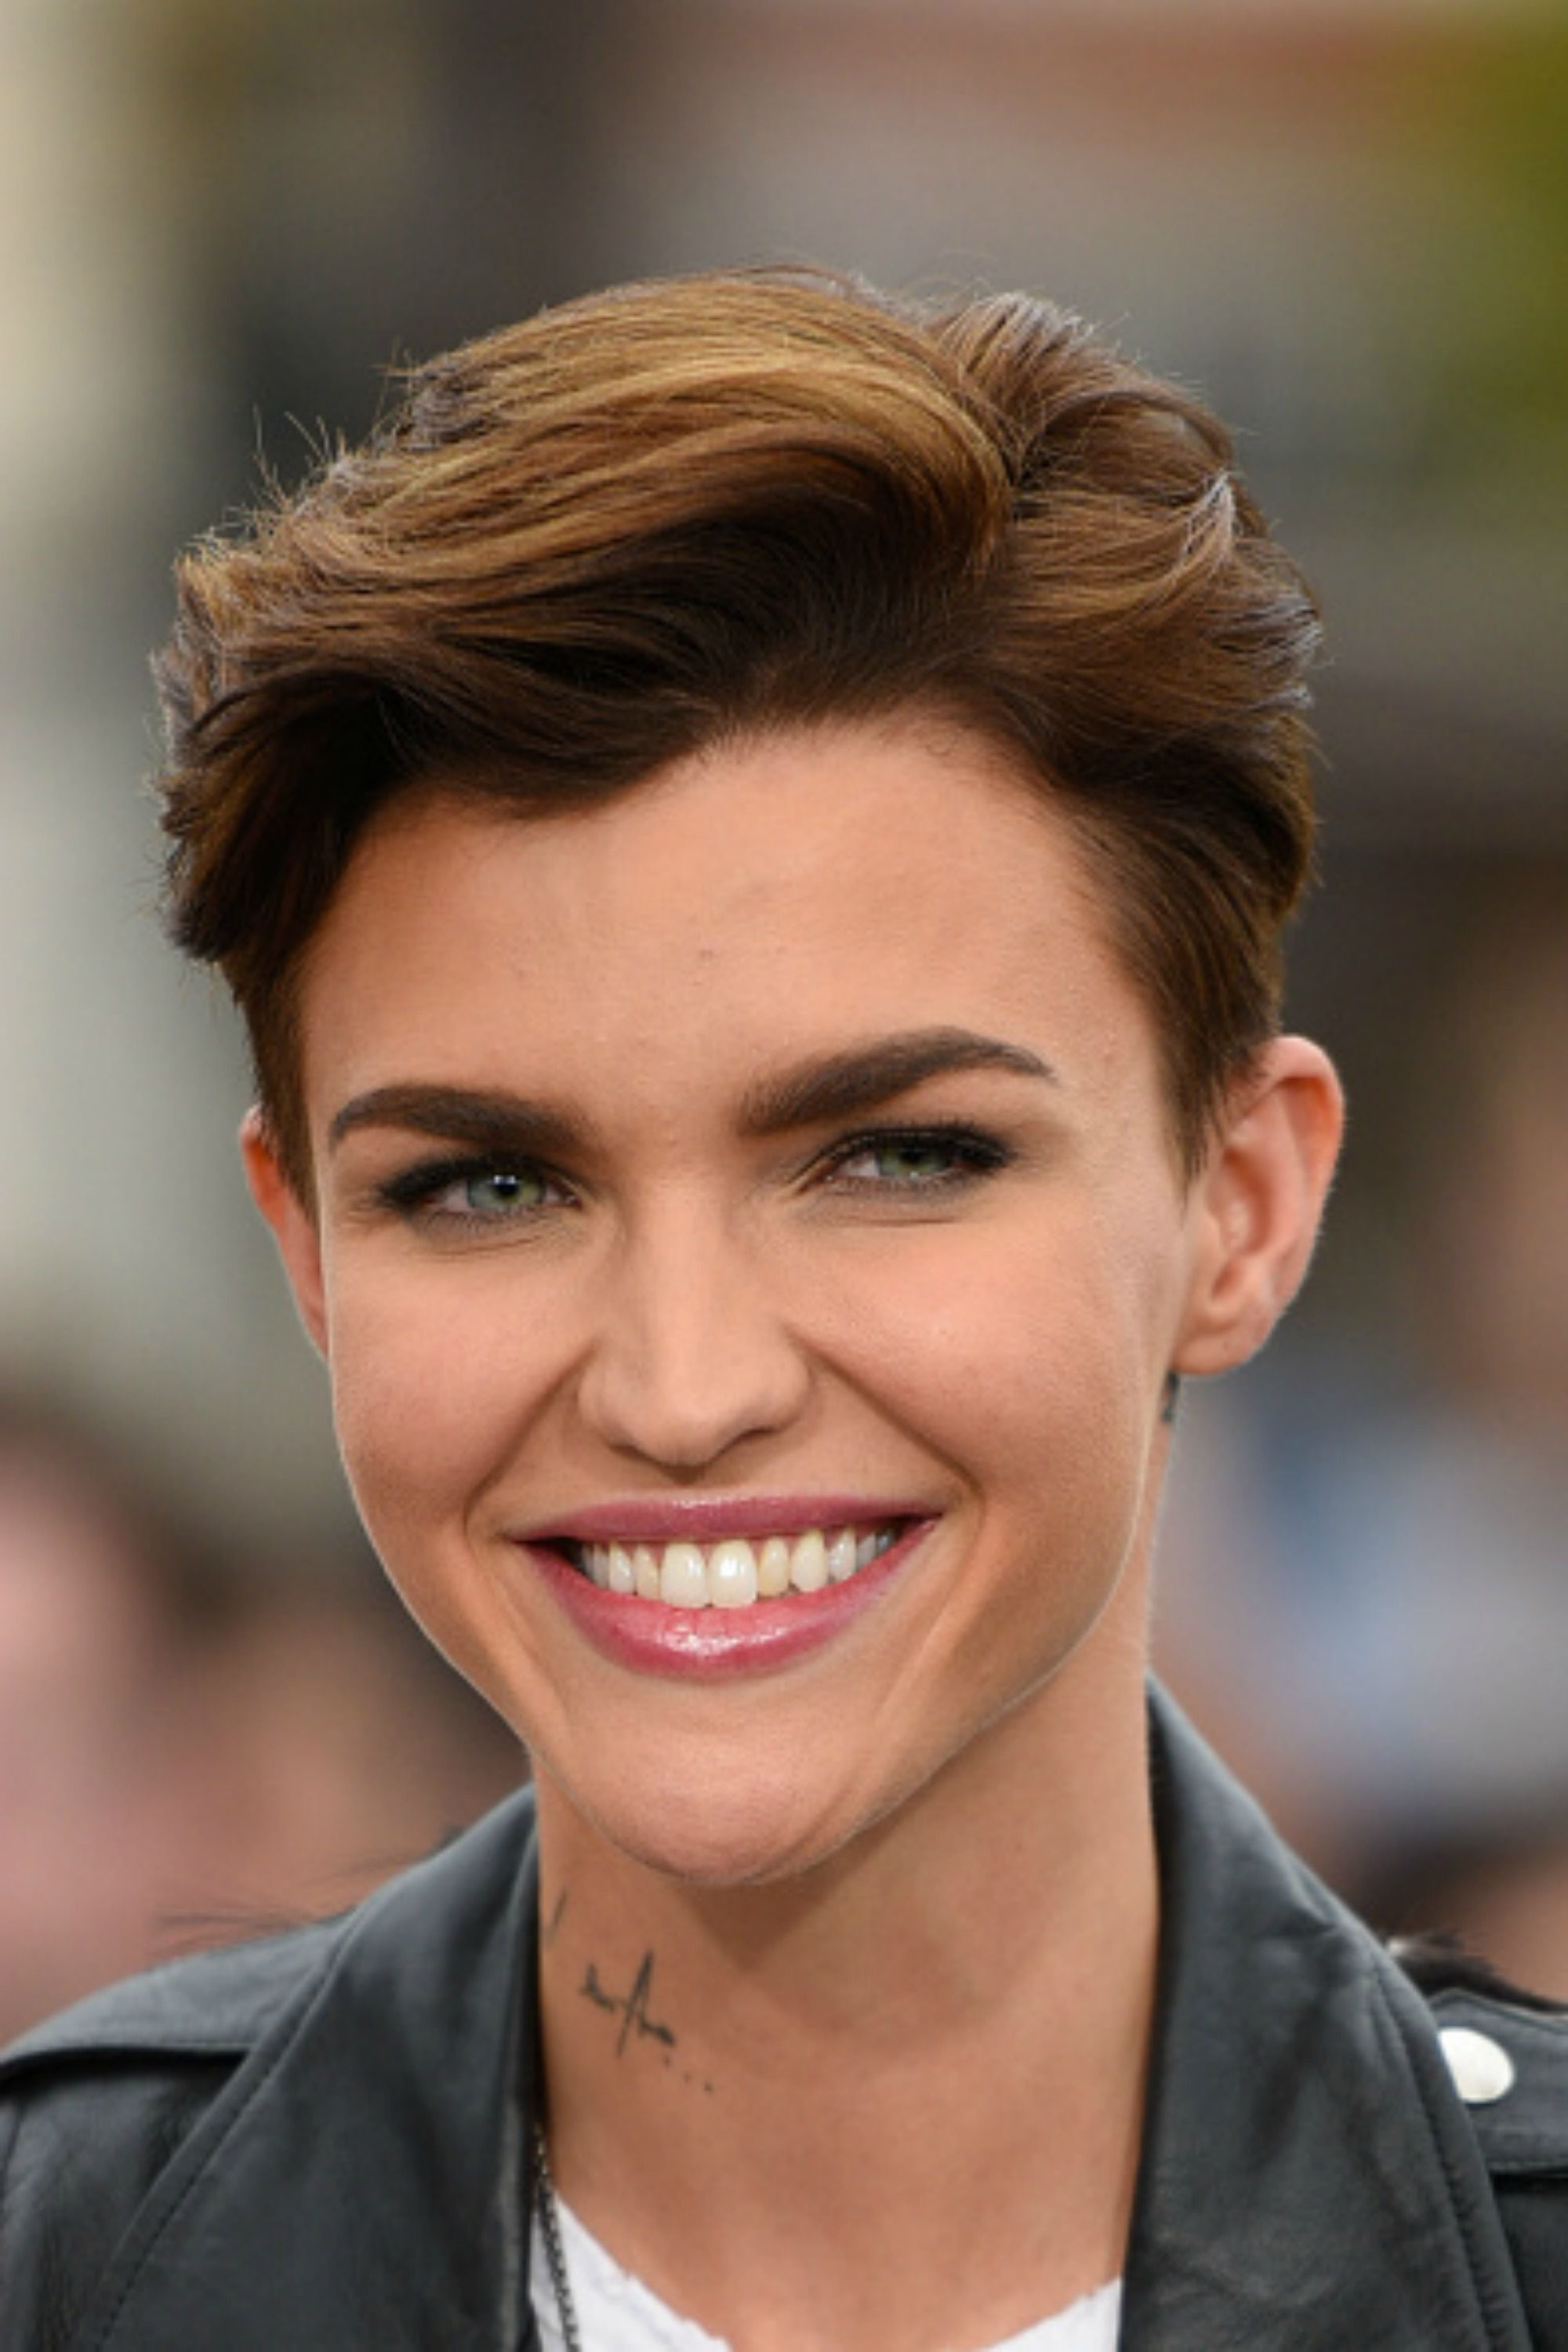 30 Short Hairstyles For Thick Hair 2017 – Women's Haircuts For Short In Short Hairstyles For Oval Face Thick Hair (View 11 of 25)